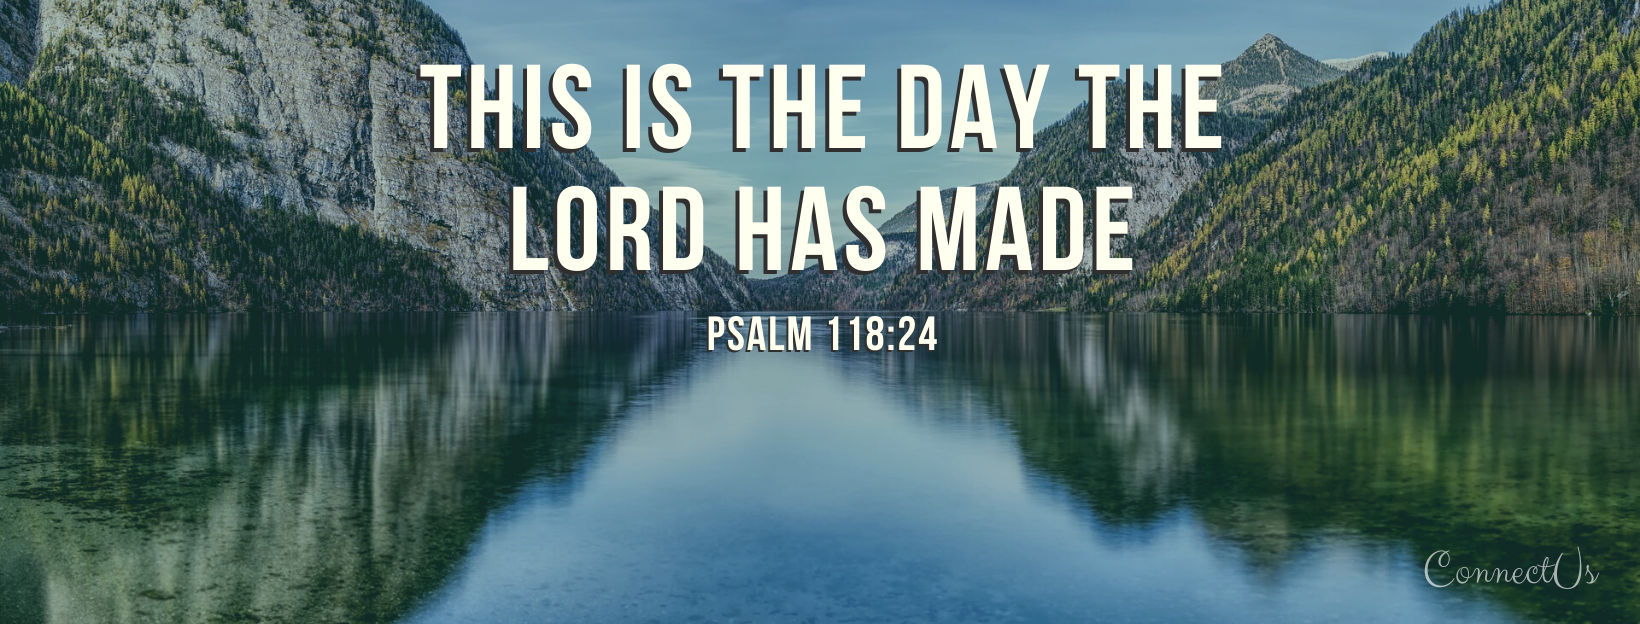 50 Free Christian Facebook Covers With Bible Verses Connectus